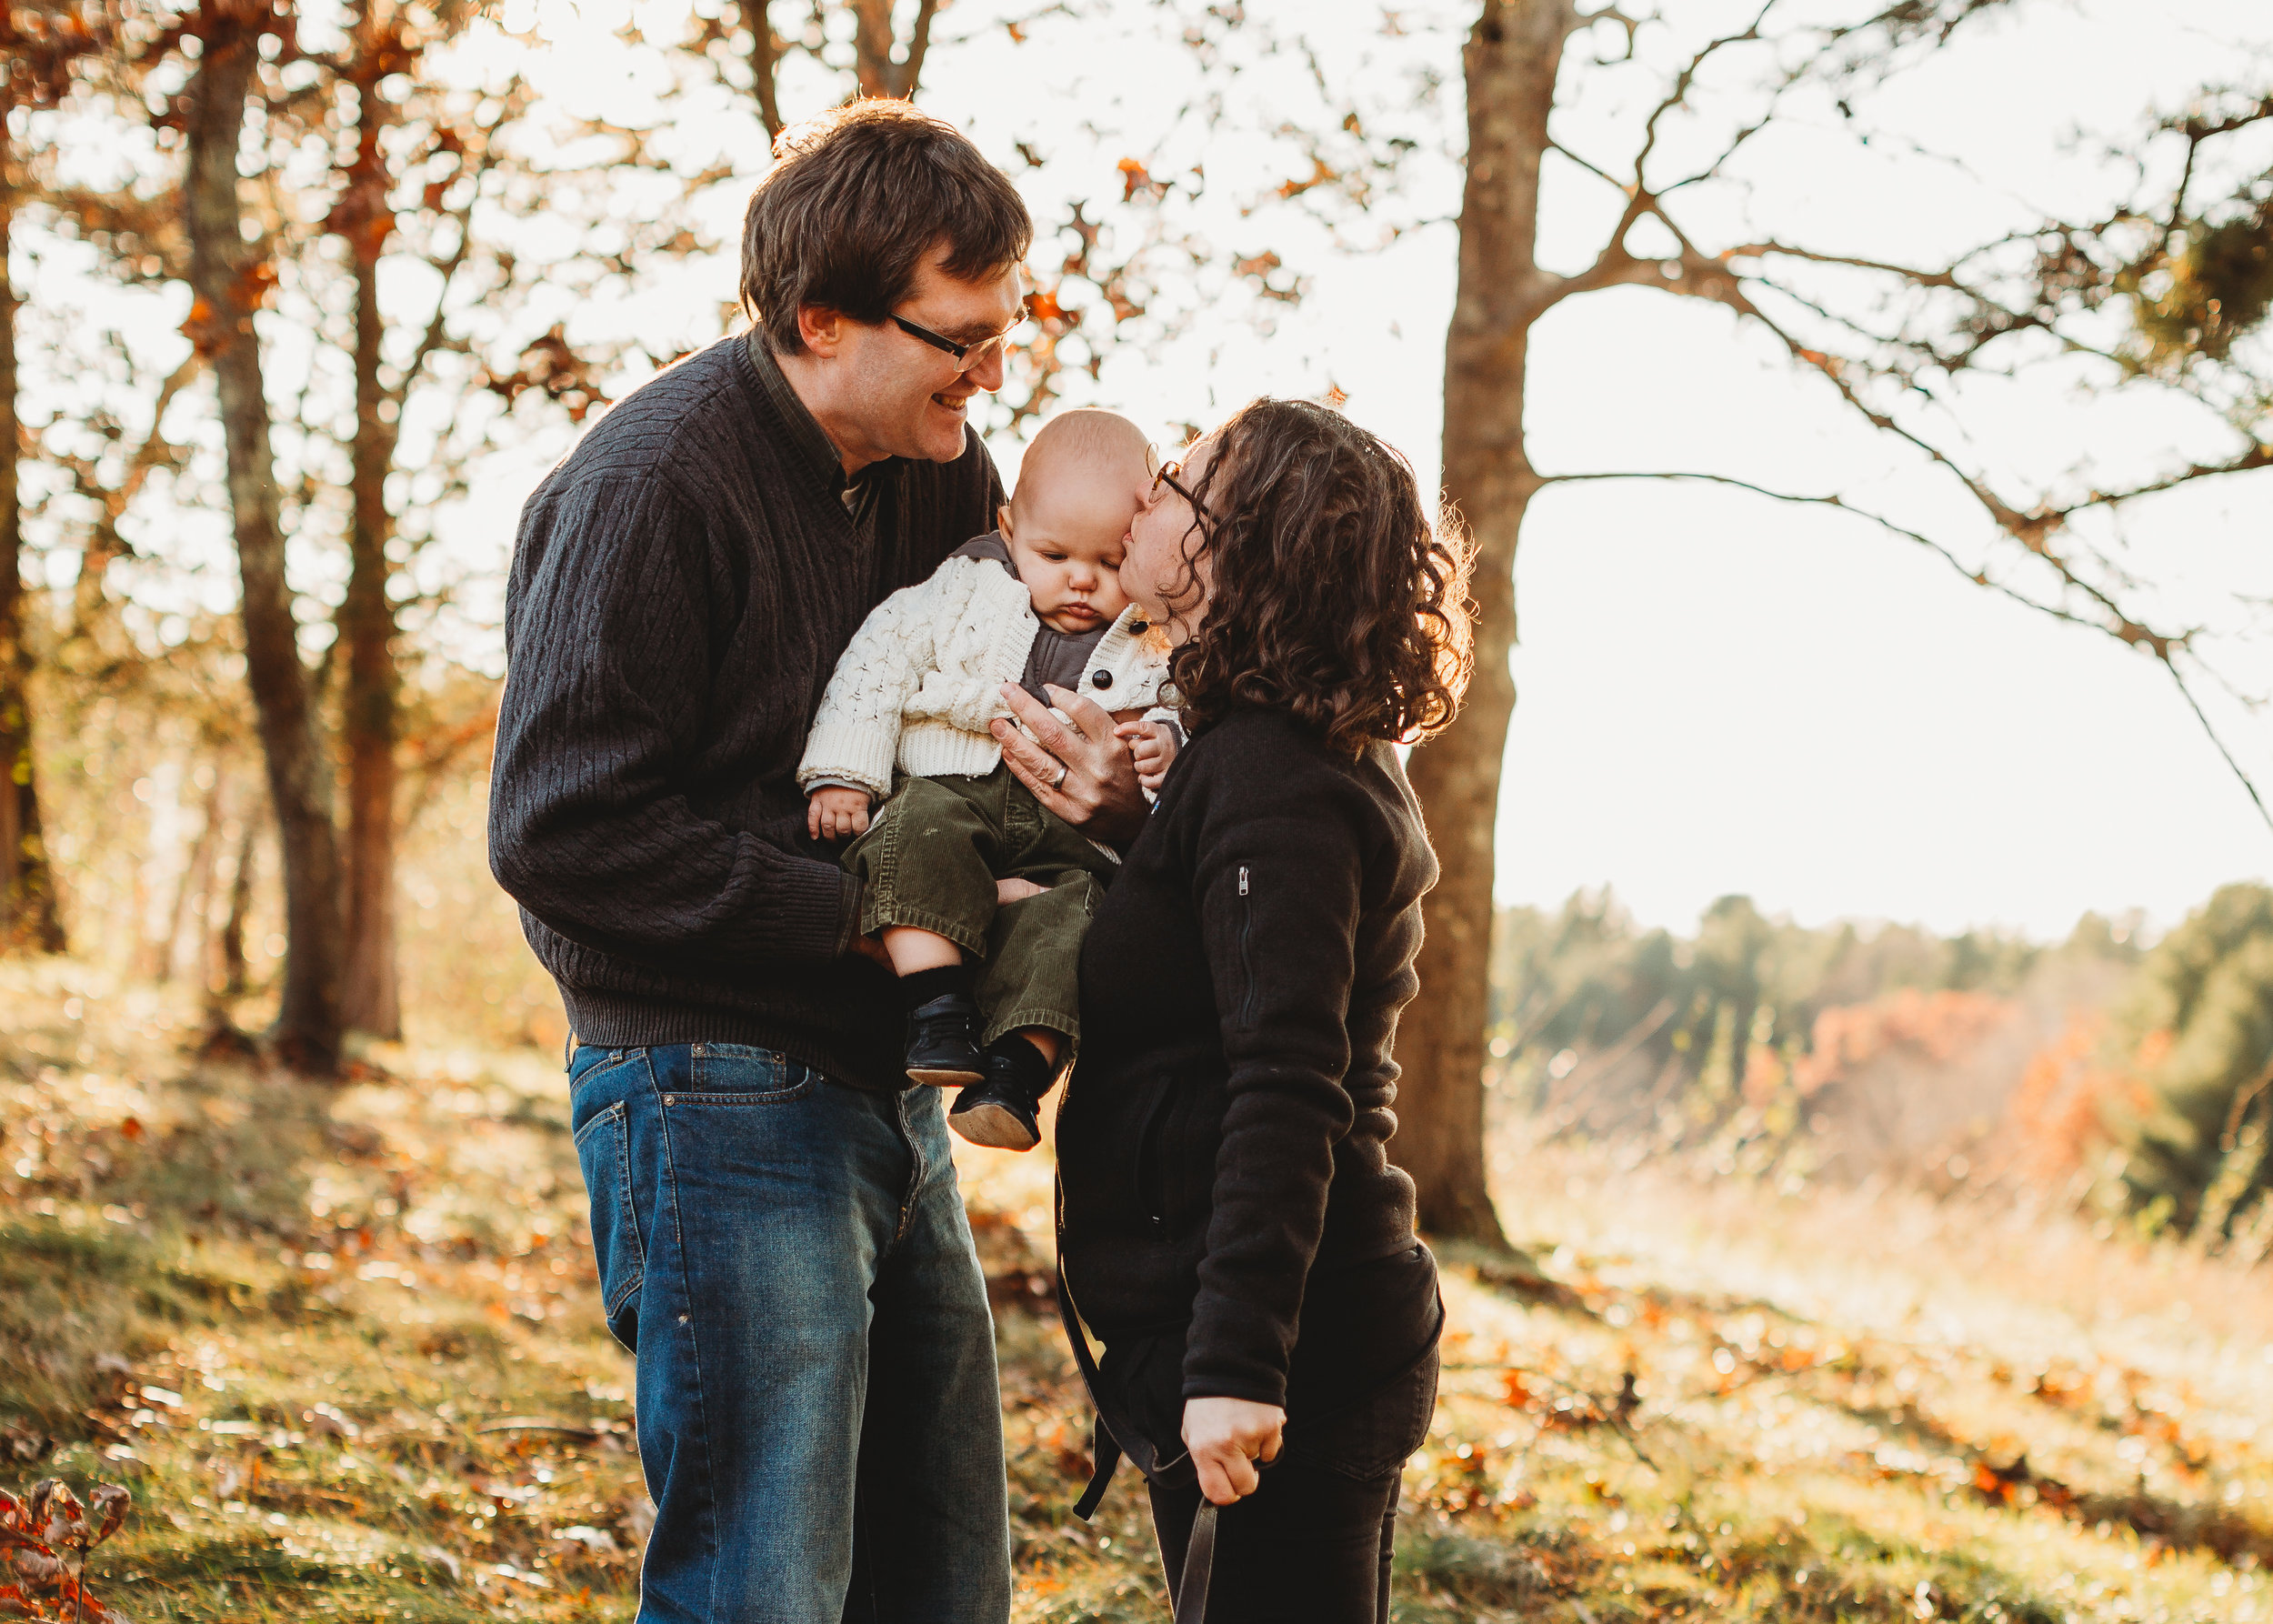 First birthday family photos in the fall. Boston family portraits. Lifestyle golden hour photography.